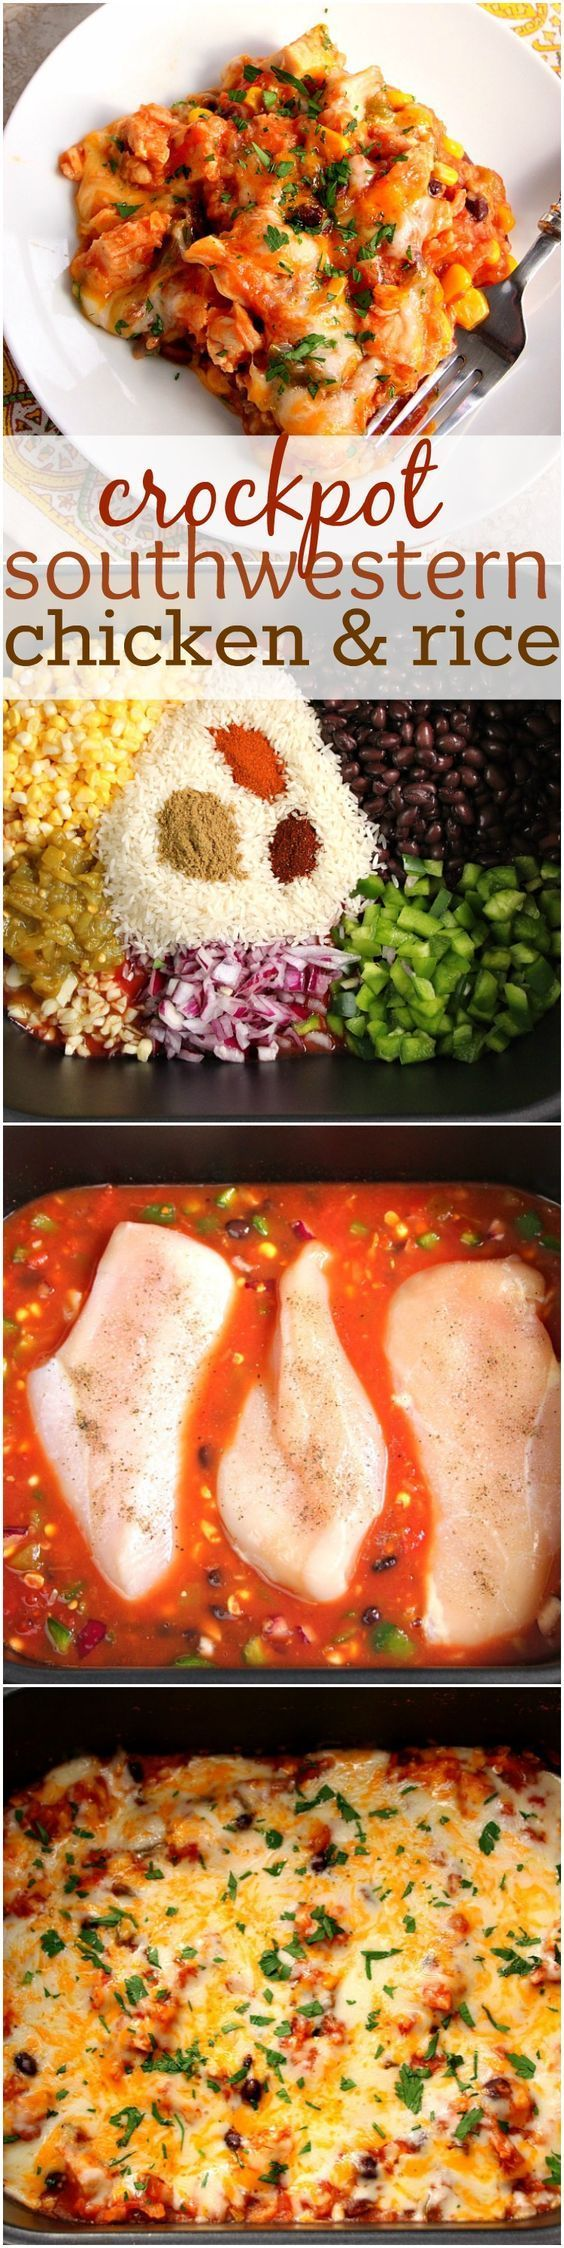 Southwestern Crock-Pot Chicken and Rice recipe – cheesy chicken, vegetable and rice dish made in a slow cooker for an easy weeknight dinner. Peppers, corn, beans and a good mix of spices add a Southwestern flair to a classic.